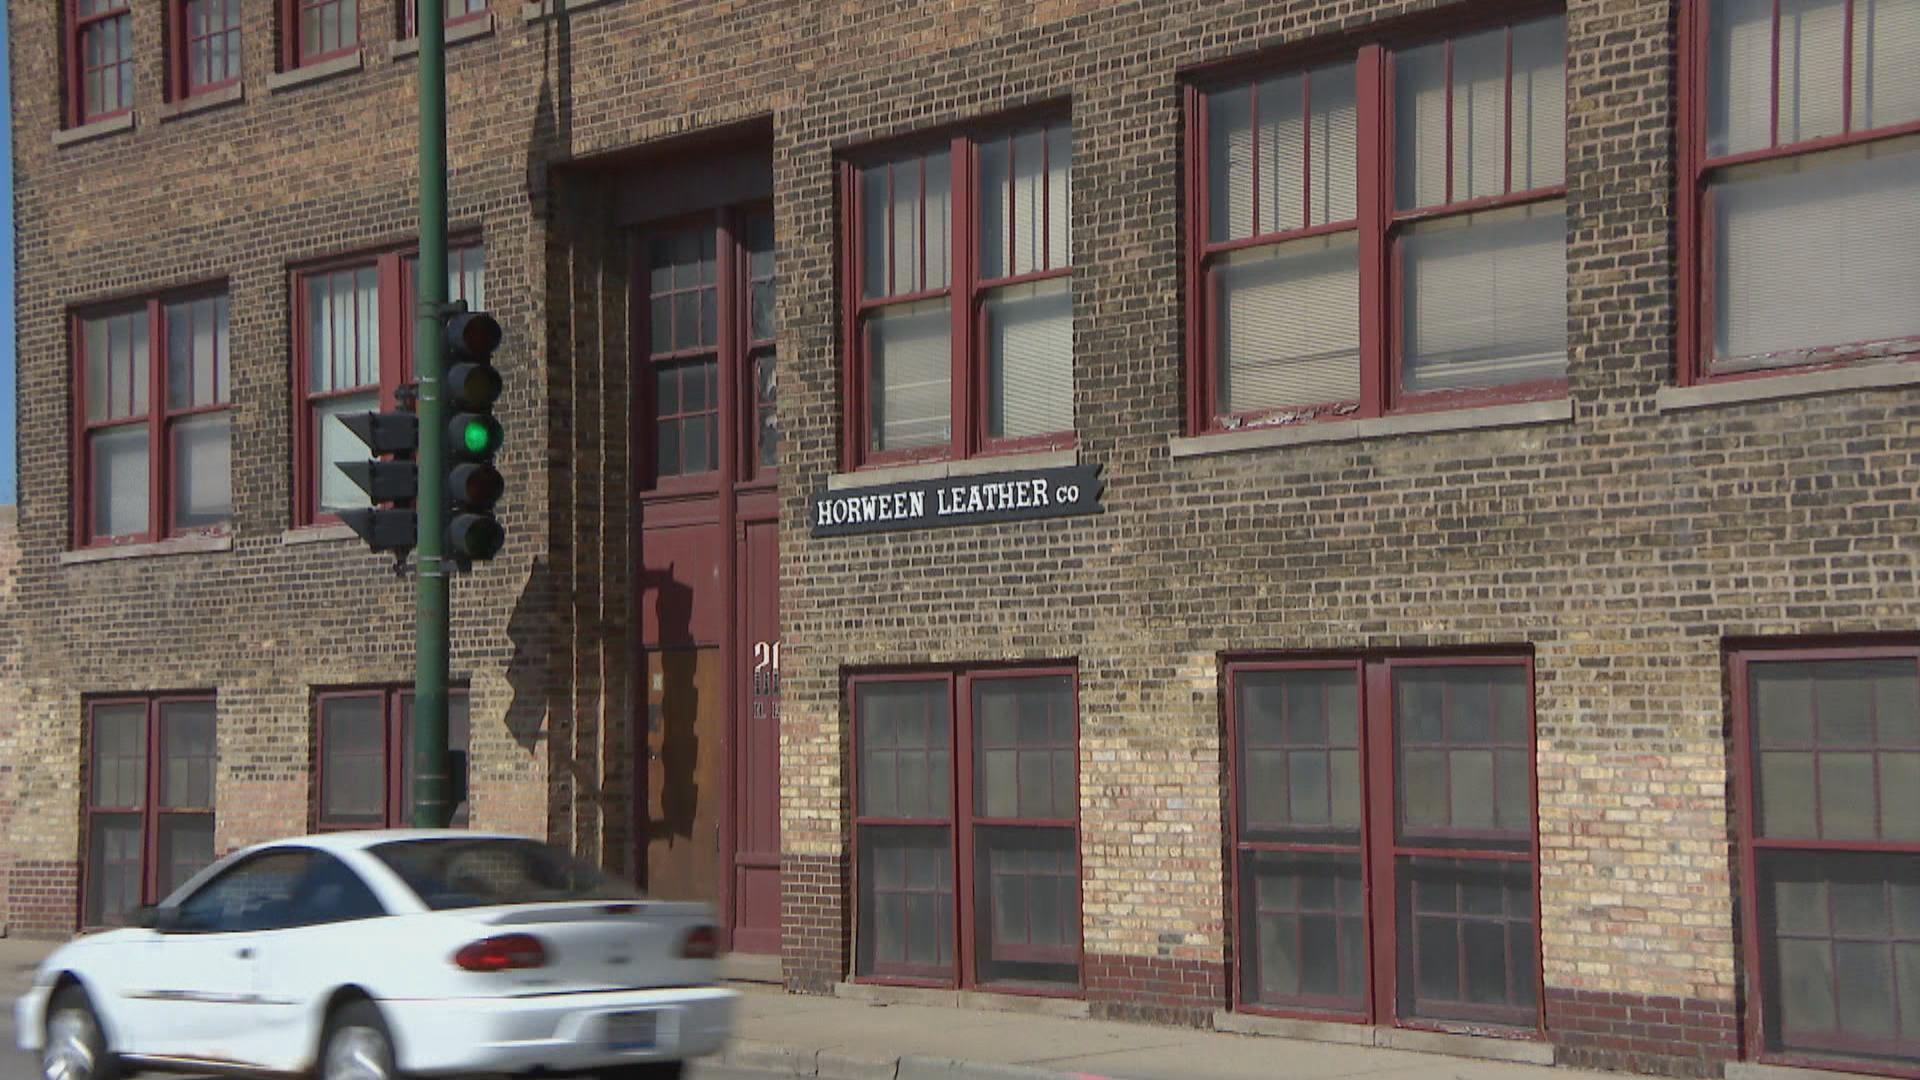 ff8ba5f5fc His great-grandfather Isadore Horween founded the company in 1905 and moved  it into its current five-floor factory in the Bucktown neighborhood on  Chicago s ...